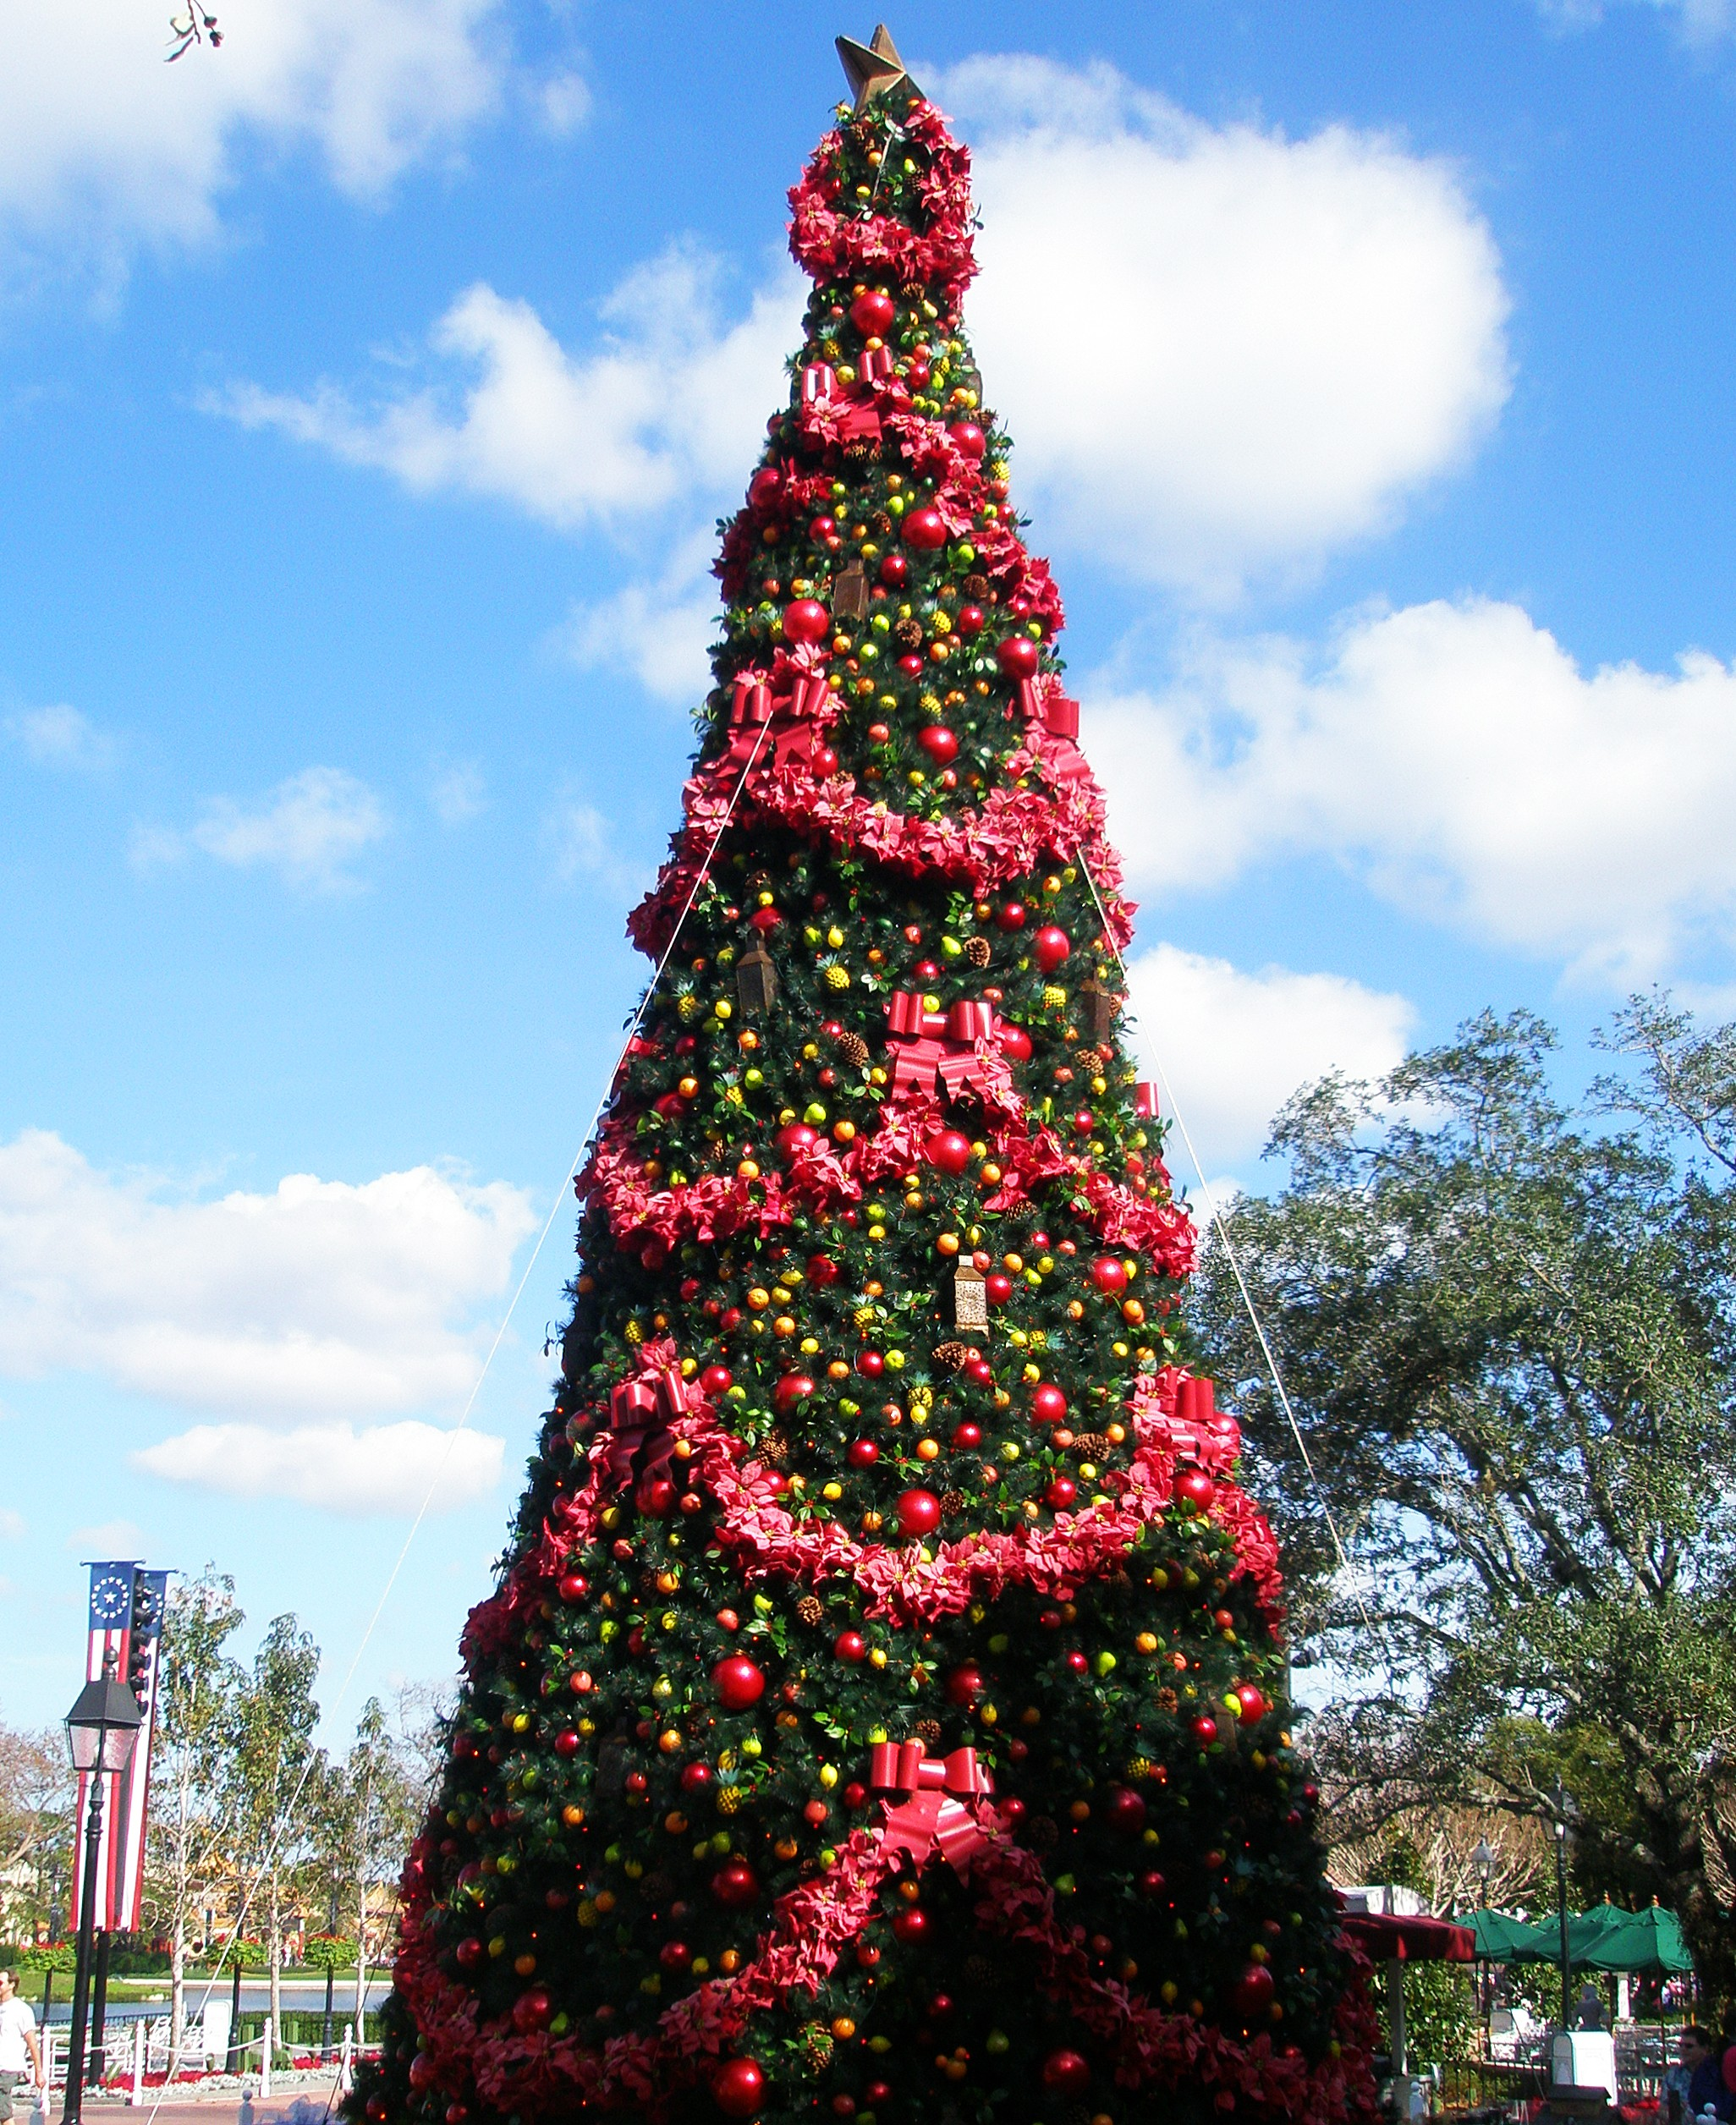 Large Christmas Tree: Big Christmas Tree Picture, By Ory For: Christmas Trees